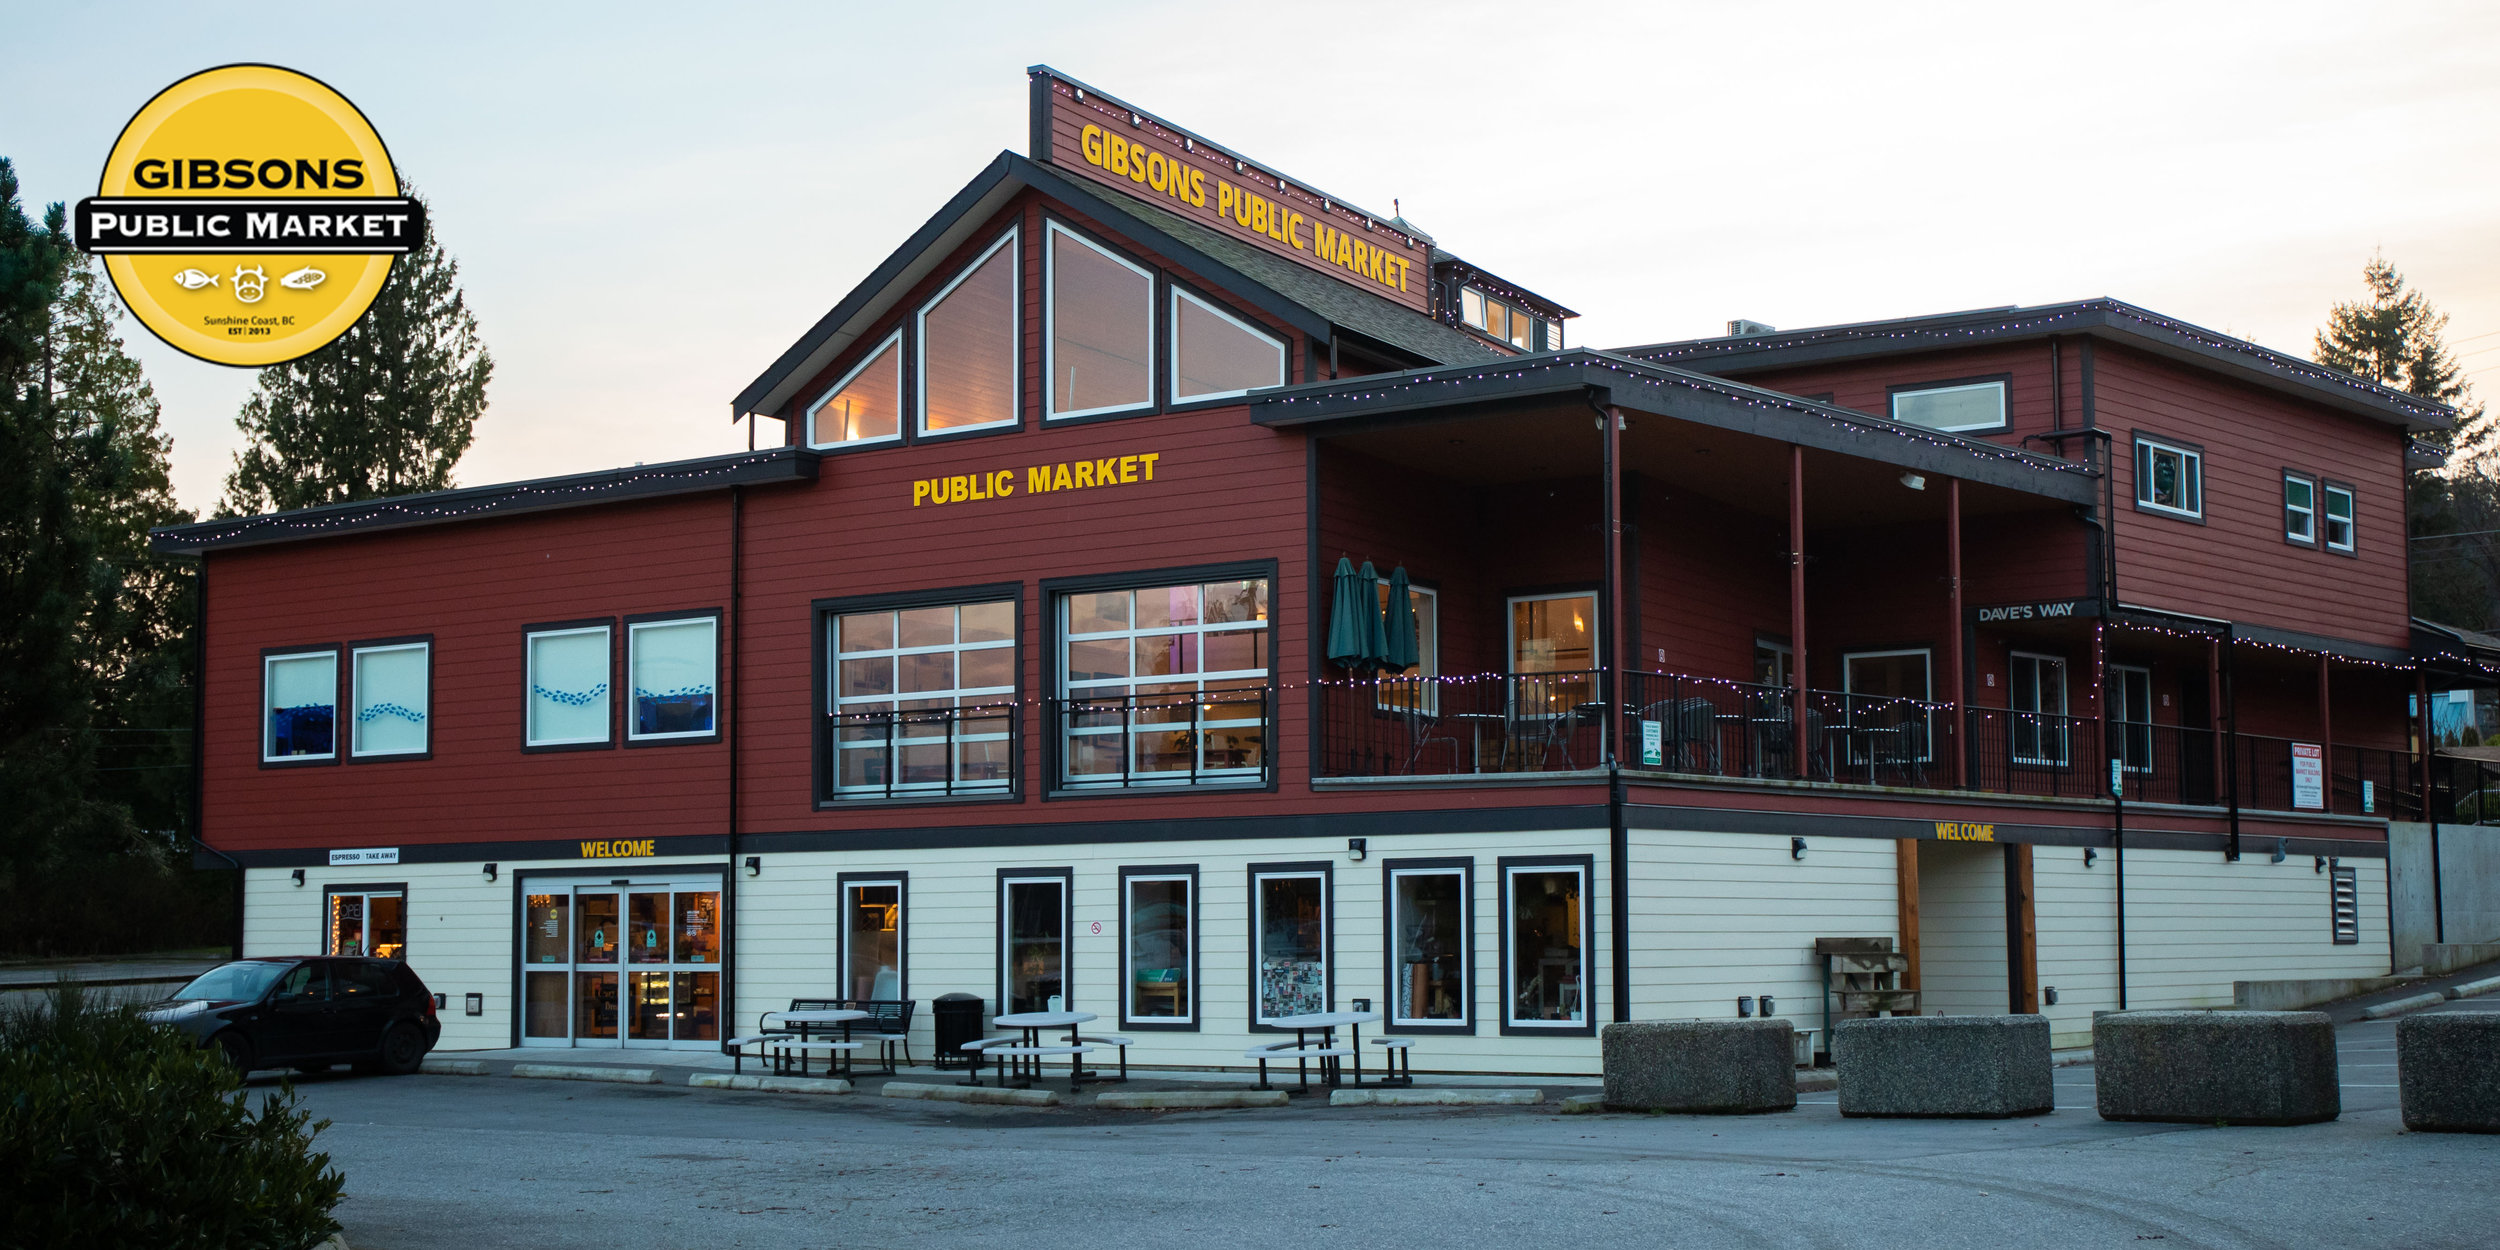 GIBSONS PUBLIC MARKET - THE BEST OF THE COAST!